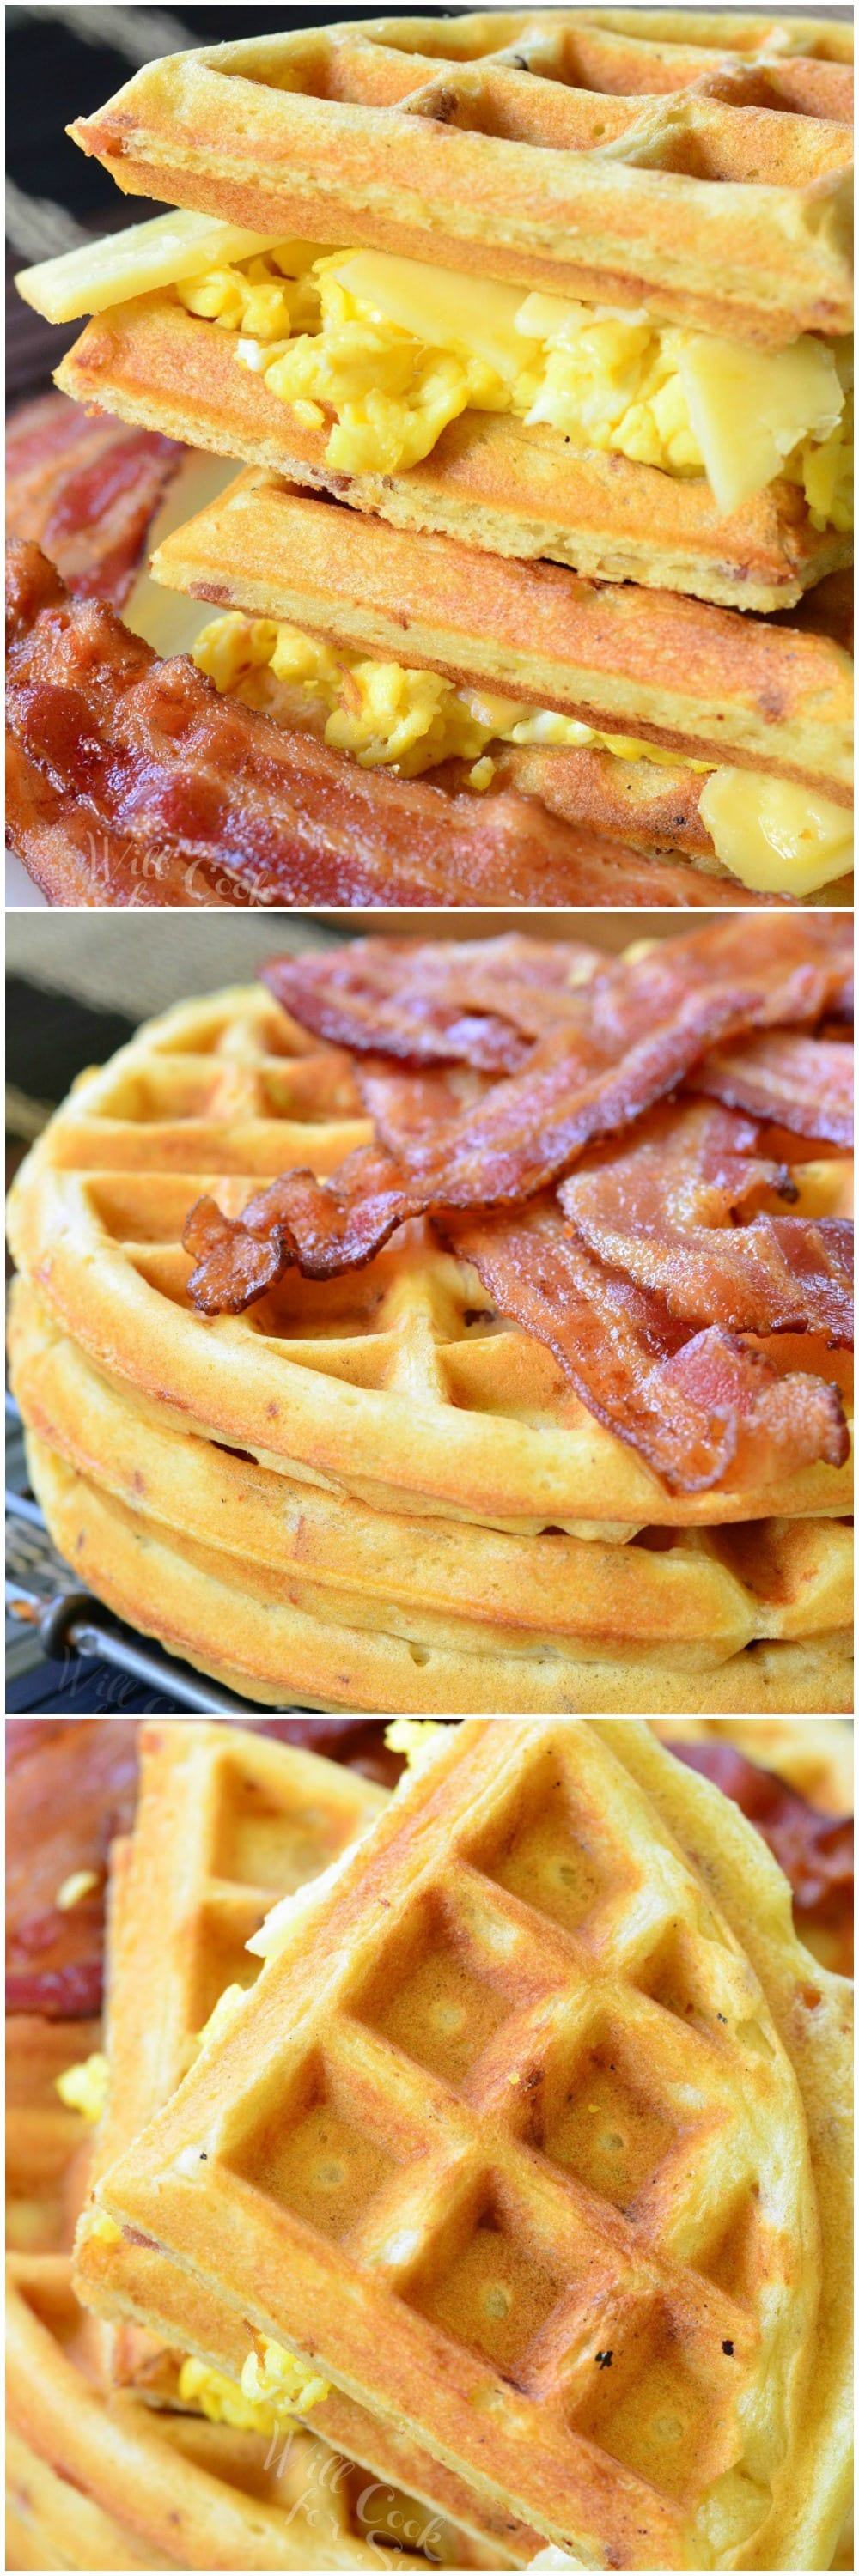 Waffle Breakfast Sandwich with Savory Bacon Waffles. Delicious breakfast sandwich for bacon lovers. Using crispy bacon and onion waffles in sandwiches makes it so much more special.